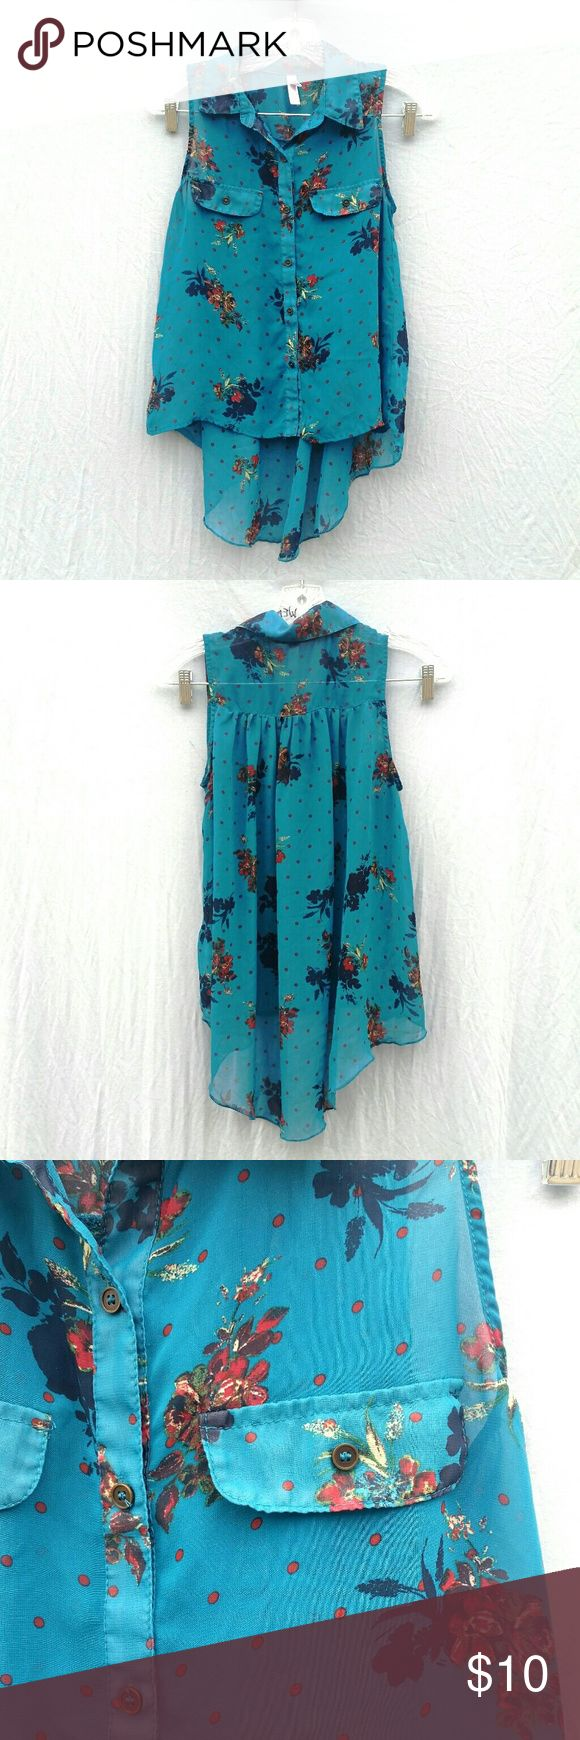 """Teal floral printed chiffon top xs Gently worn button up collar neck chiffon like material floral printed top. I advise wearing a tank top underneath or a cute bralette. No flaws or stains. Has a pleated back and a high low hem. Has two front pockets.  Tag Size : XS  Front Length : 20"""" From Target #tothedunes #floral #chiffon #spring #summer #print #boho #sweet date lunch Boho festival basic essential Xhilaration Tops Blouses"""